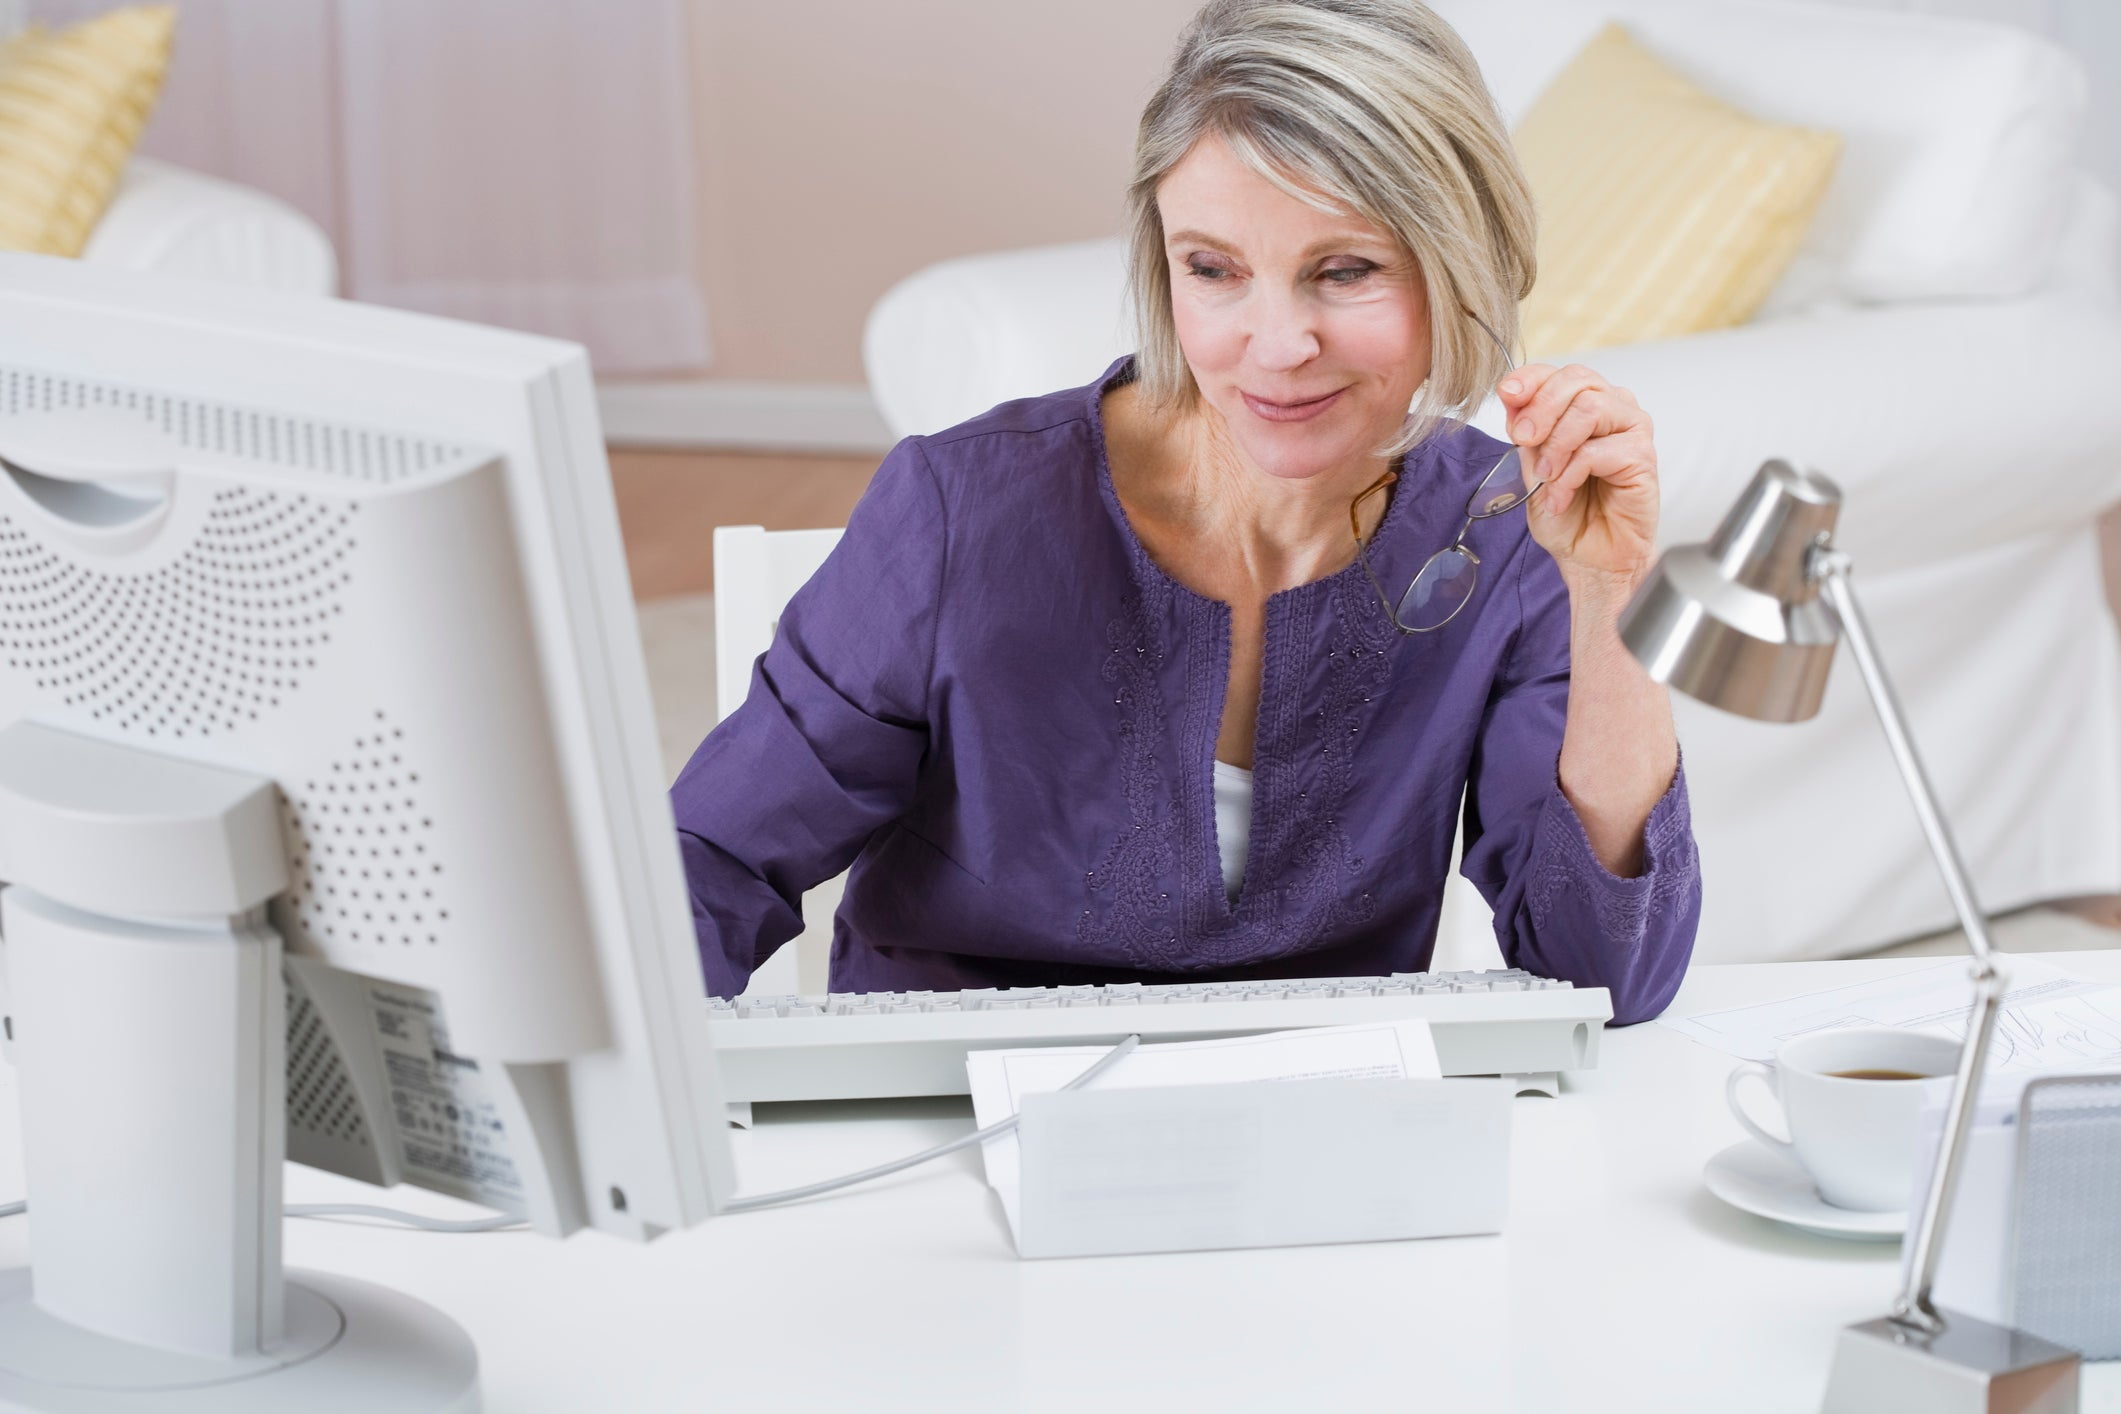 3 Stocks for Baby Boomers to Reach Their Goals | The ...